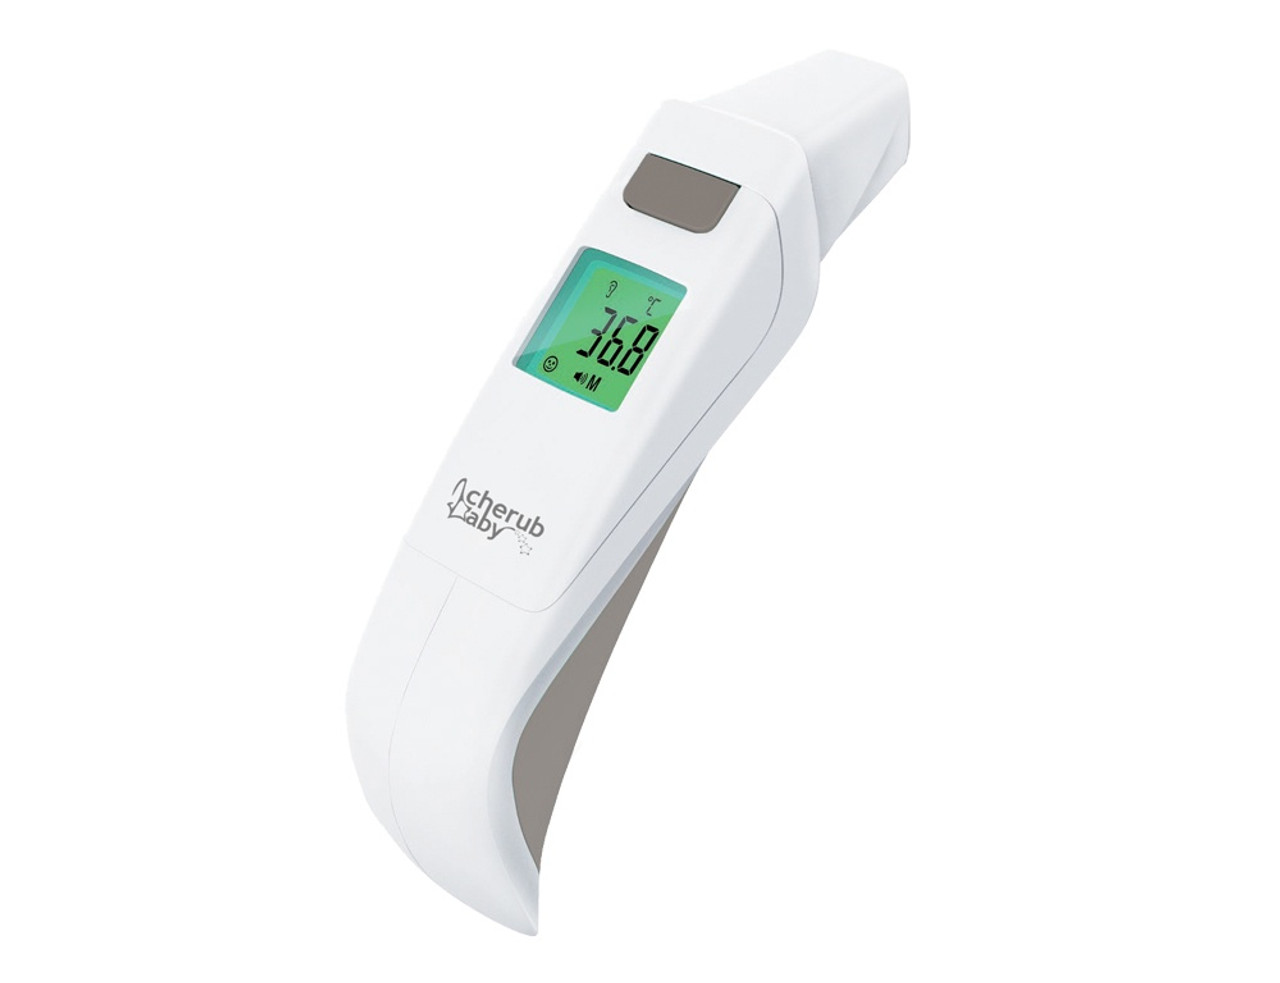 Cherub Baby 5 in 1 Touchless Infrared Digital Ear, Forehead & Bath Thermometer at Baby Barn Discounts Accuscan technology takes a continuous reading across key points on the forehead to calculate a more consistent and more accurate temperature than achieved from a single reading